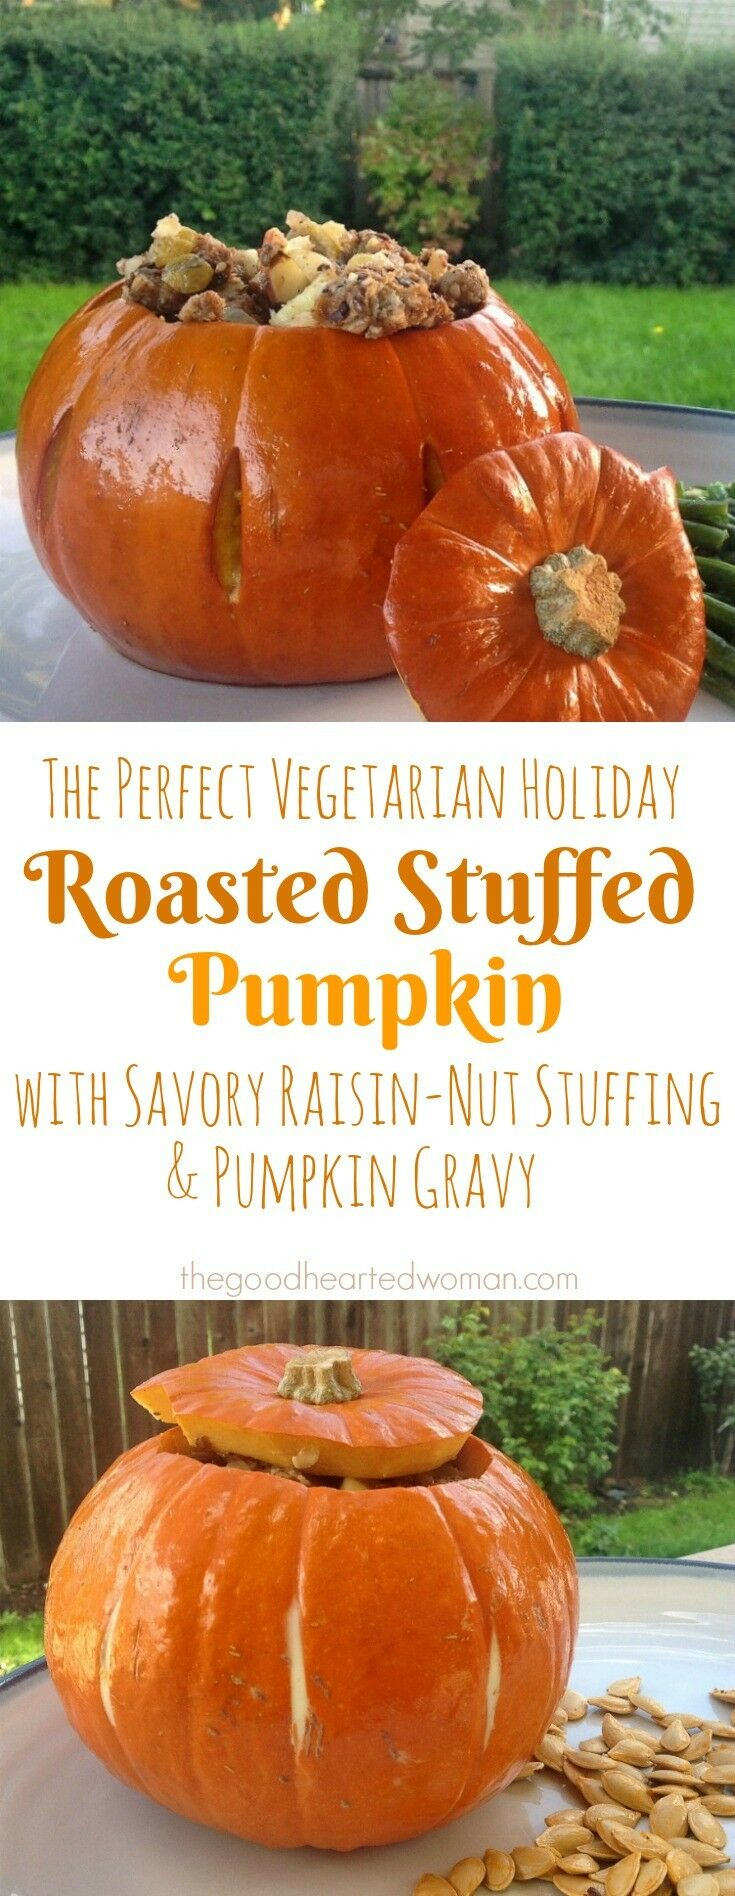 Roasted Stuffed Pumpkin {with Savory Raisin-Nut Stuffing & Pumpkin Gravy} | The Good Hearted Woman